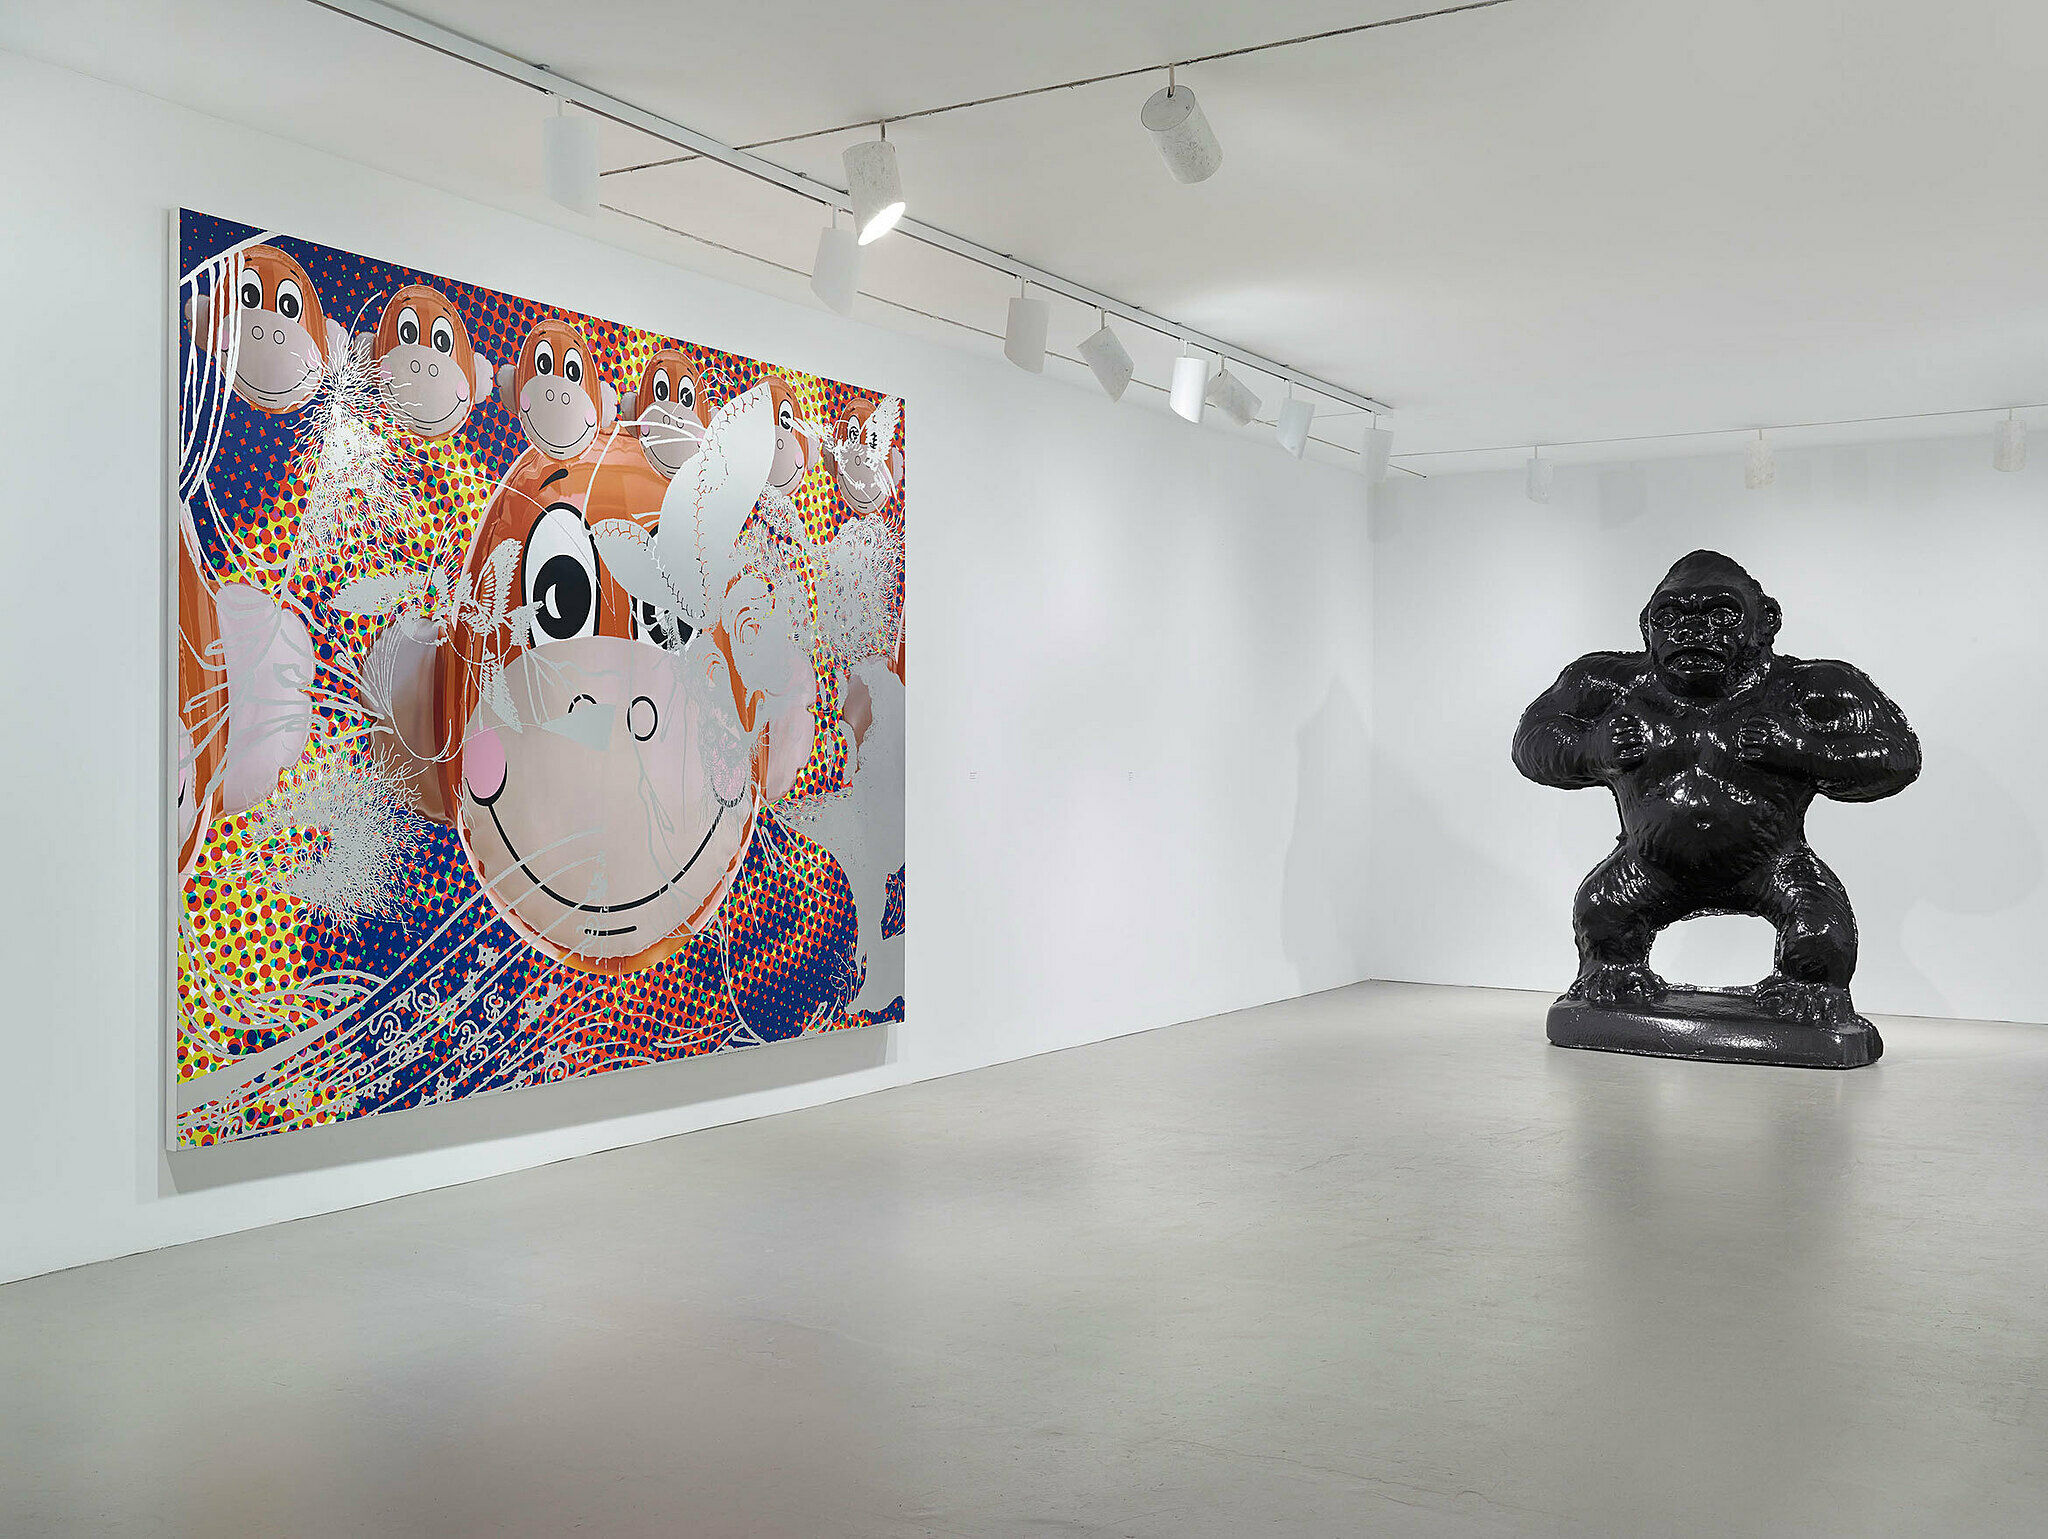 Gorilla statue stands next to large painting.